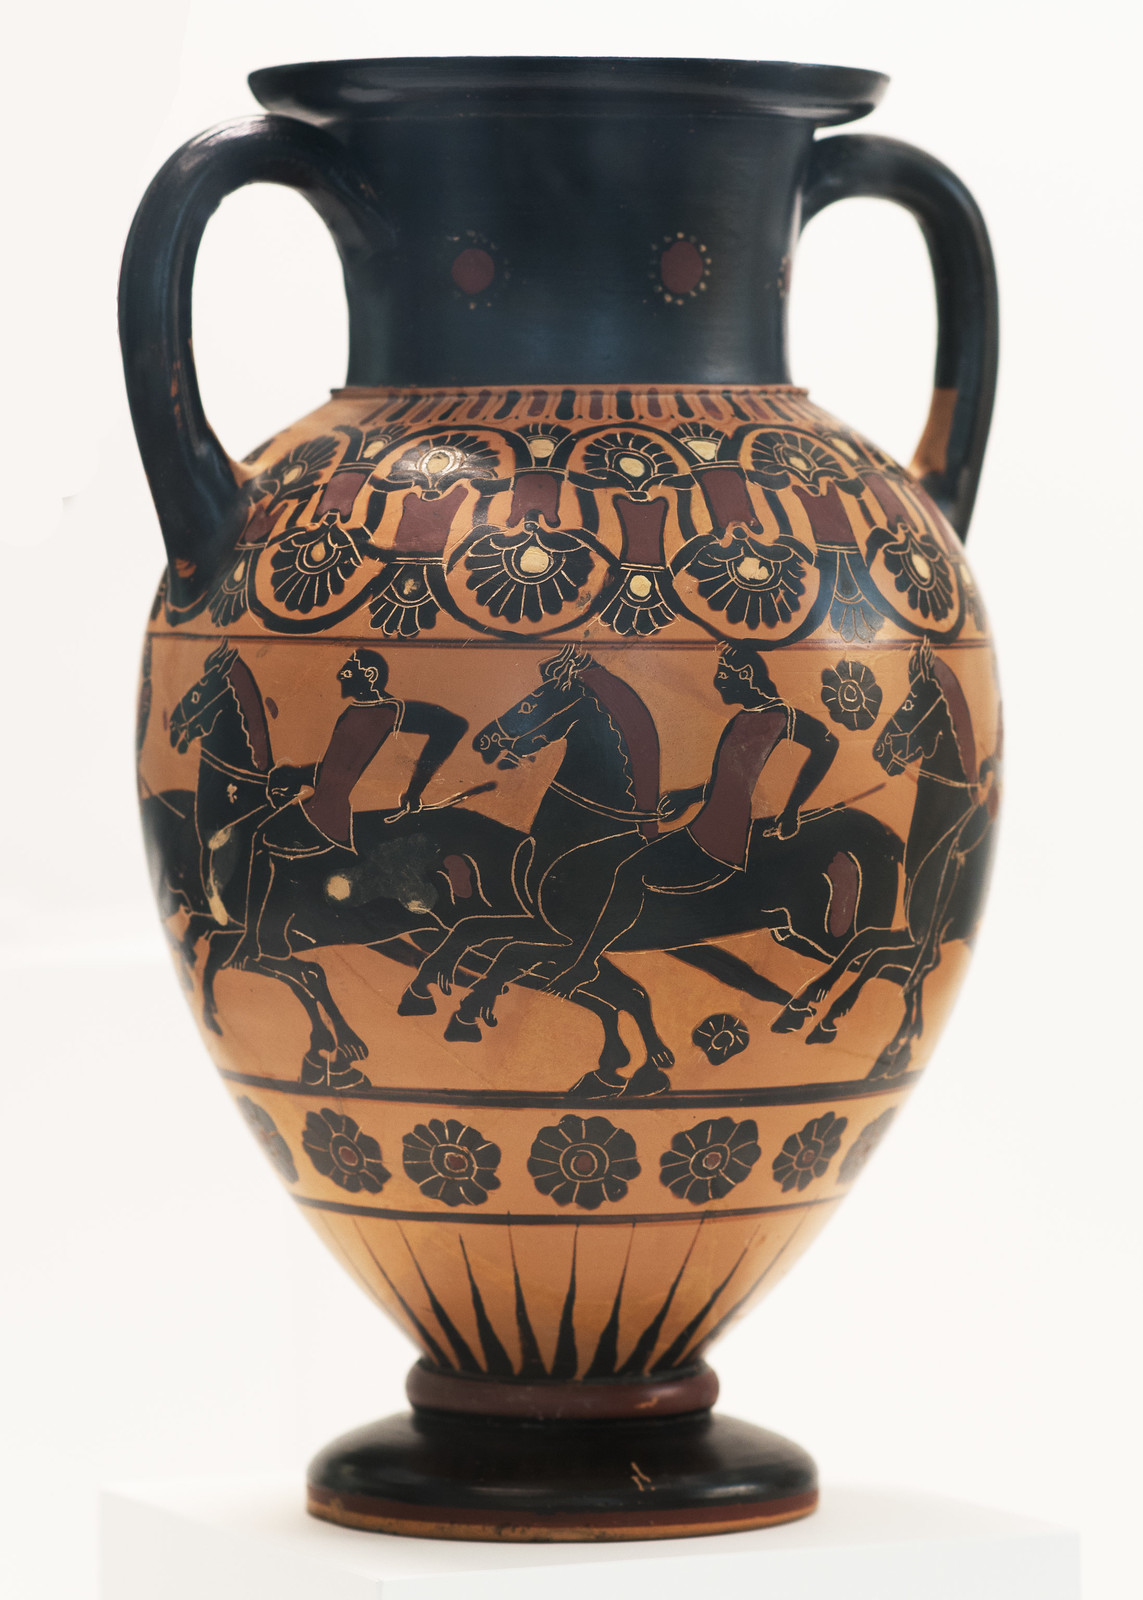 Amphora with riding youths, cr. 550-540 BC, Reggio di Calabria